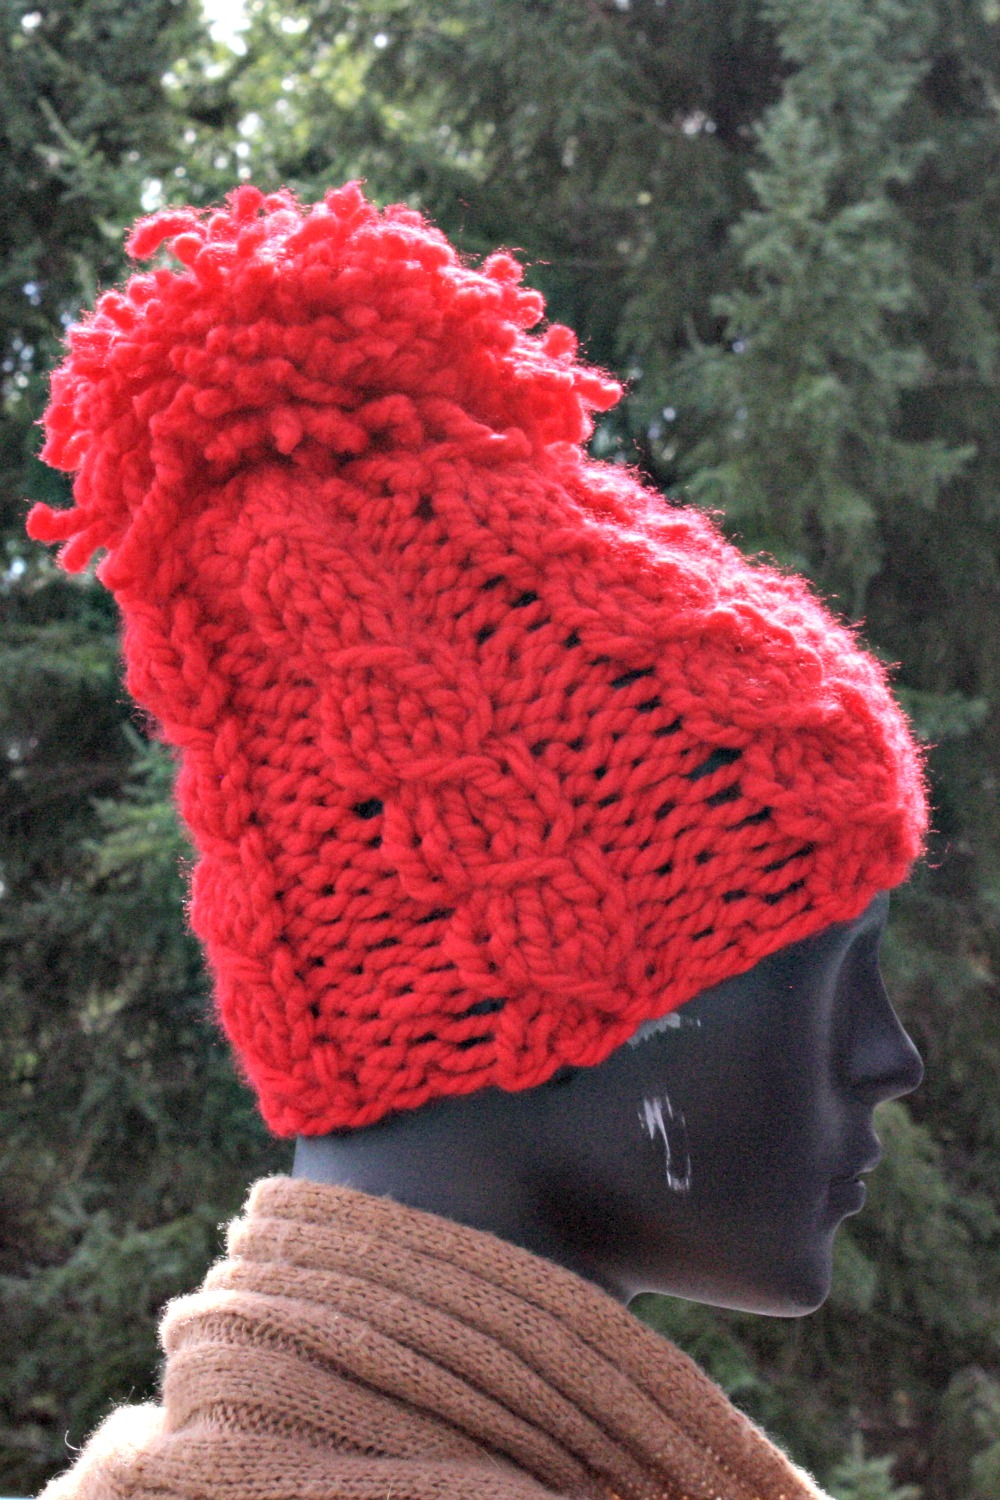 The Twisted Stitch Pom Pom Hat - Super Duper Knit Hats for Beginners - book of fabulous knitting patterns for hat suited for beginners and professionals